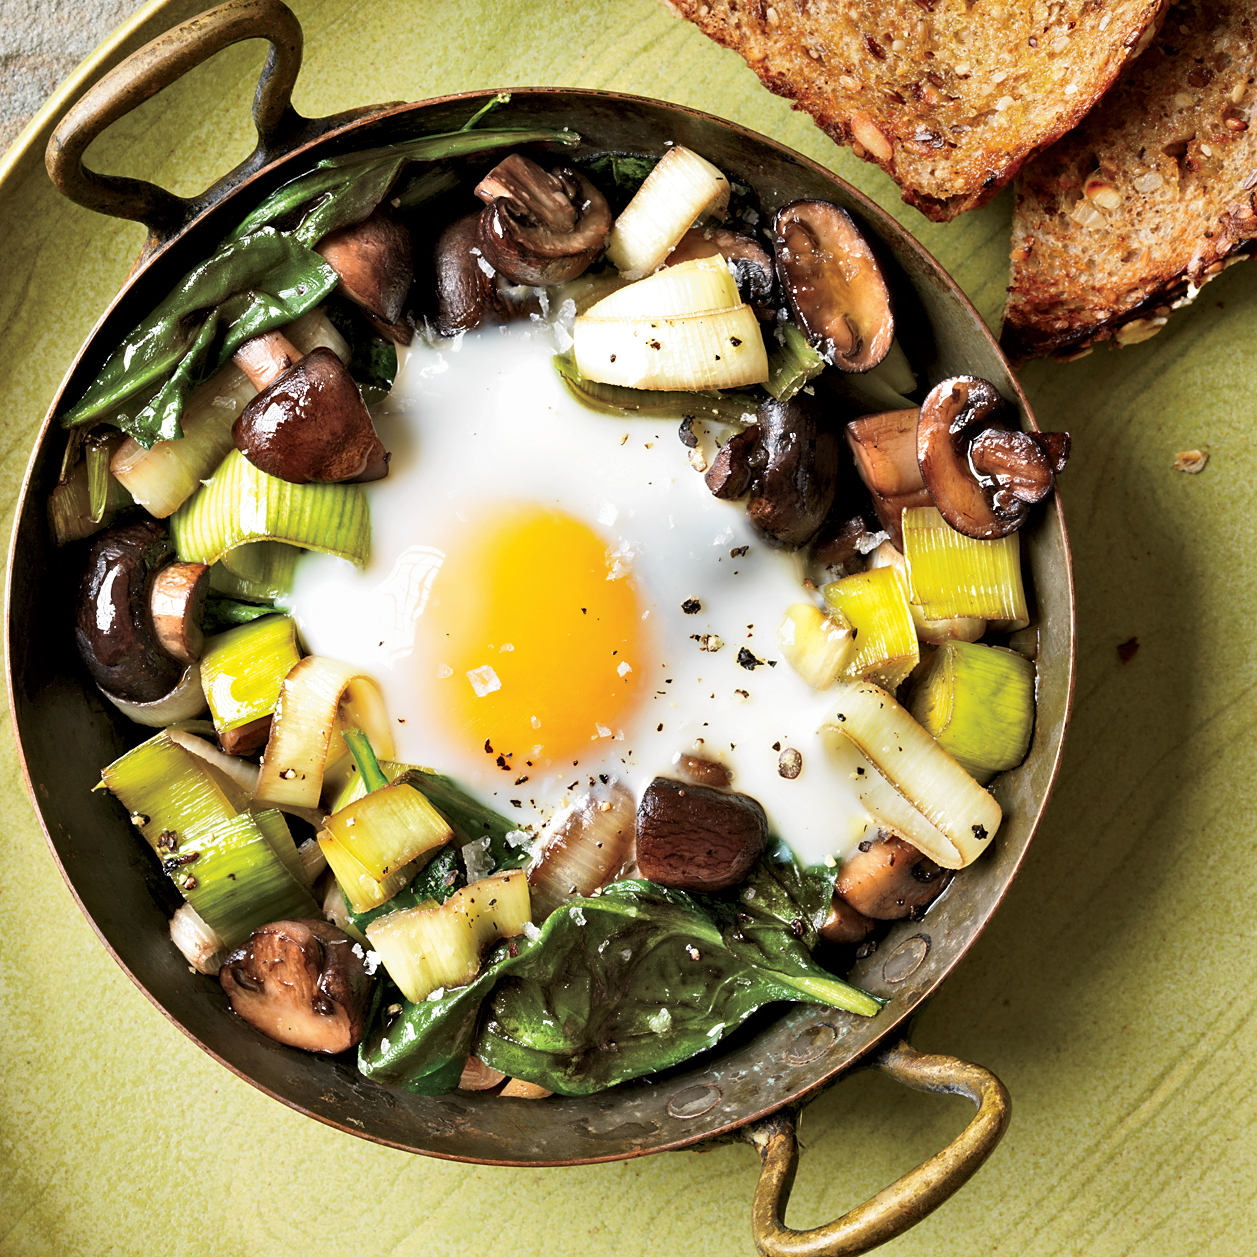 Low-Calorie Meals: Eggs Baked Over Sautéed Mushrooms and Spinach Recipe